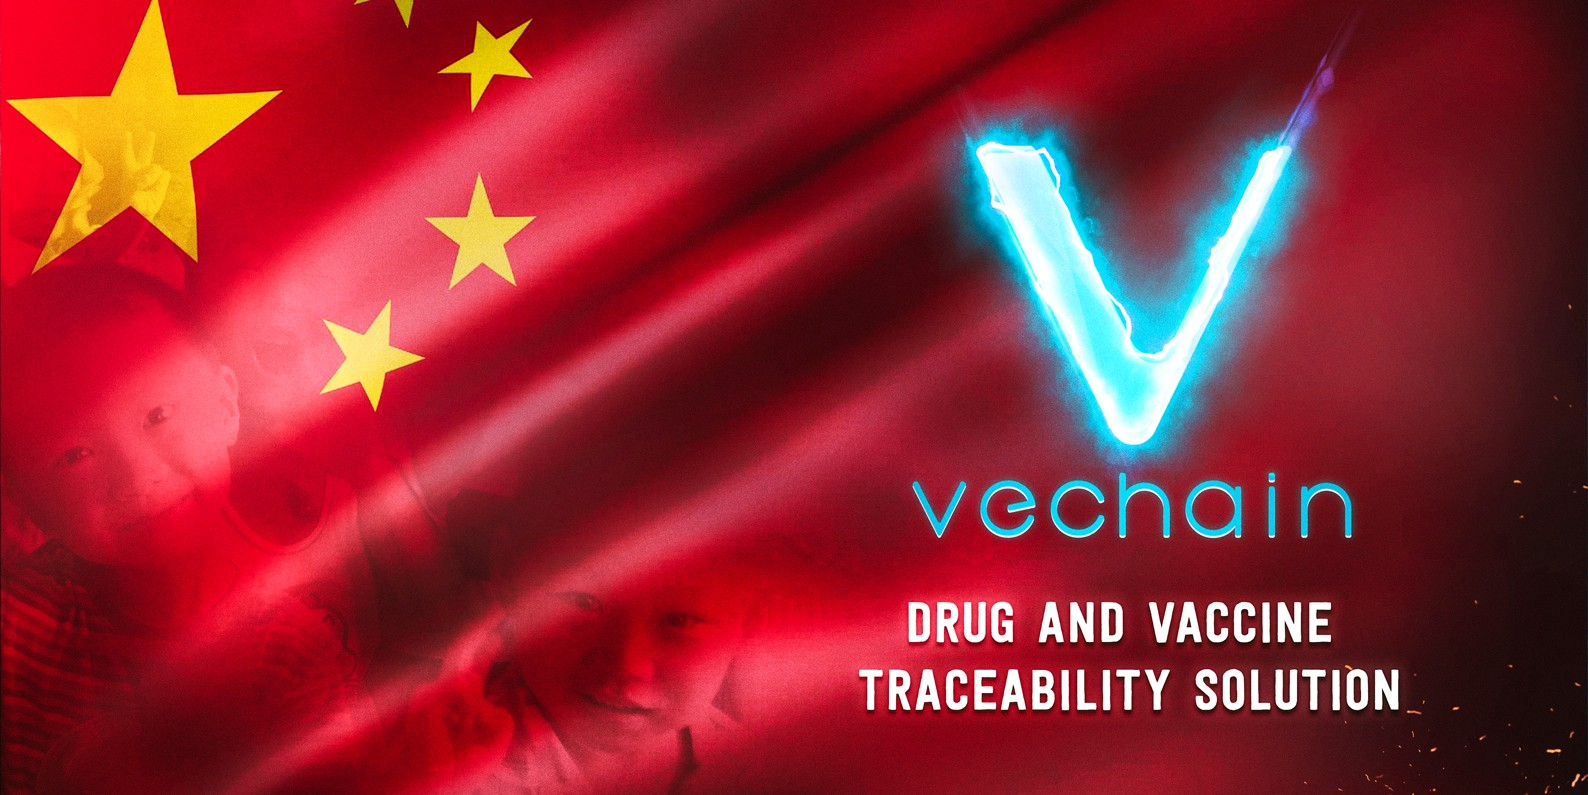 VeChain (VEN) Unveils Drug and Vaccine Traceability Solution For Over 30 Million People 13